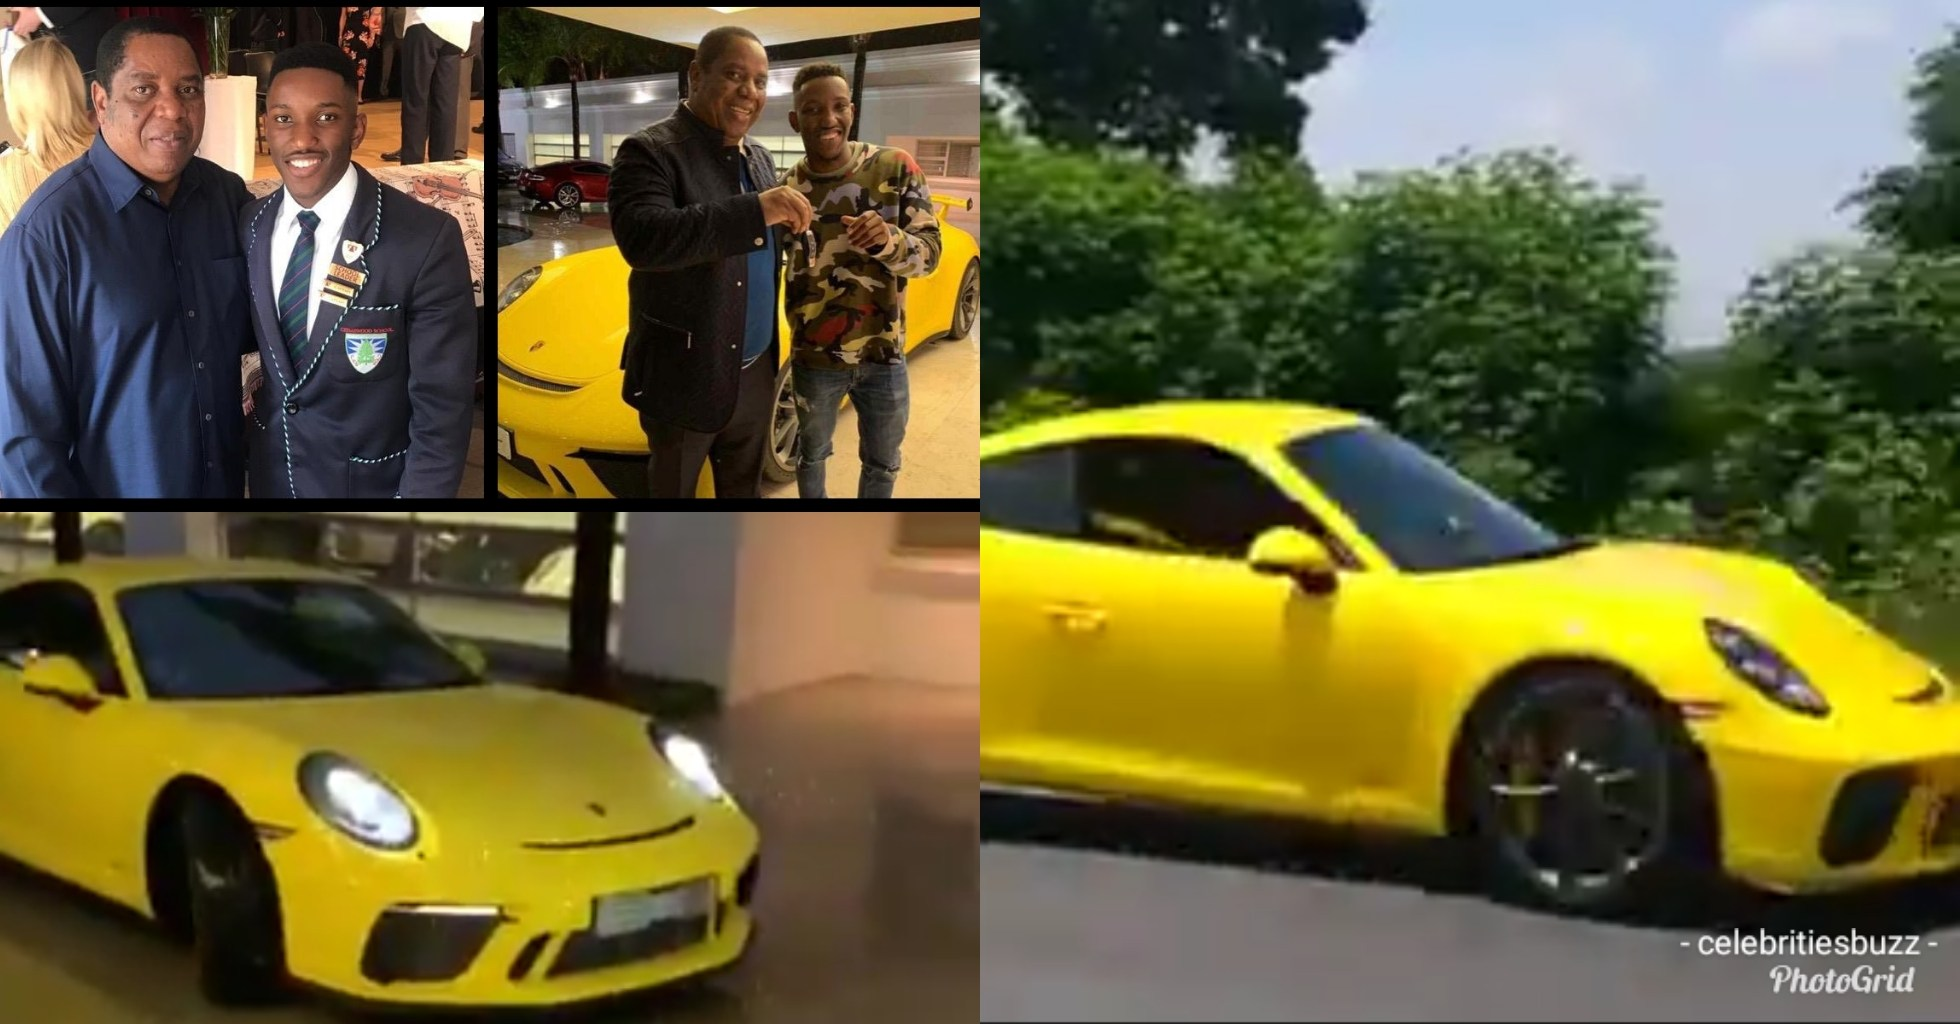 South African billionaire rewards his 18-year-old son with a Porsche for passing matric exam